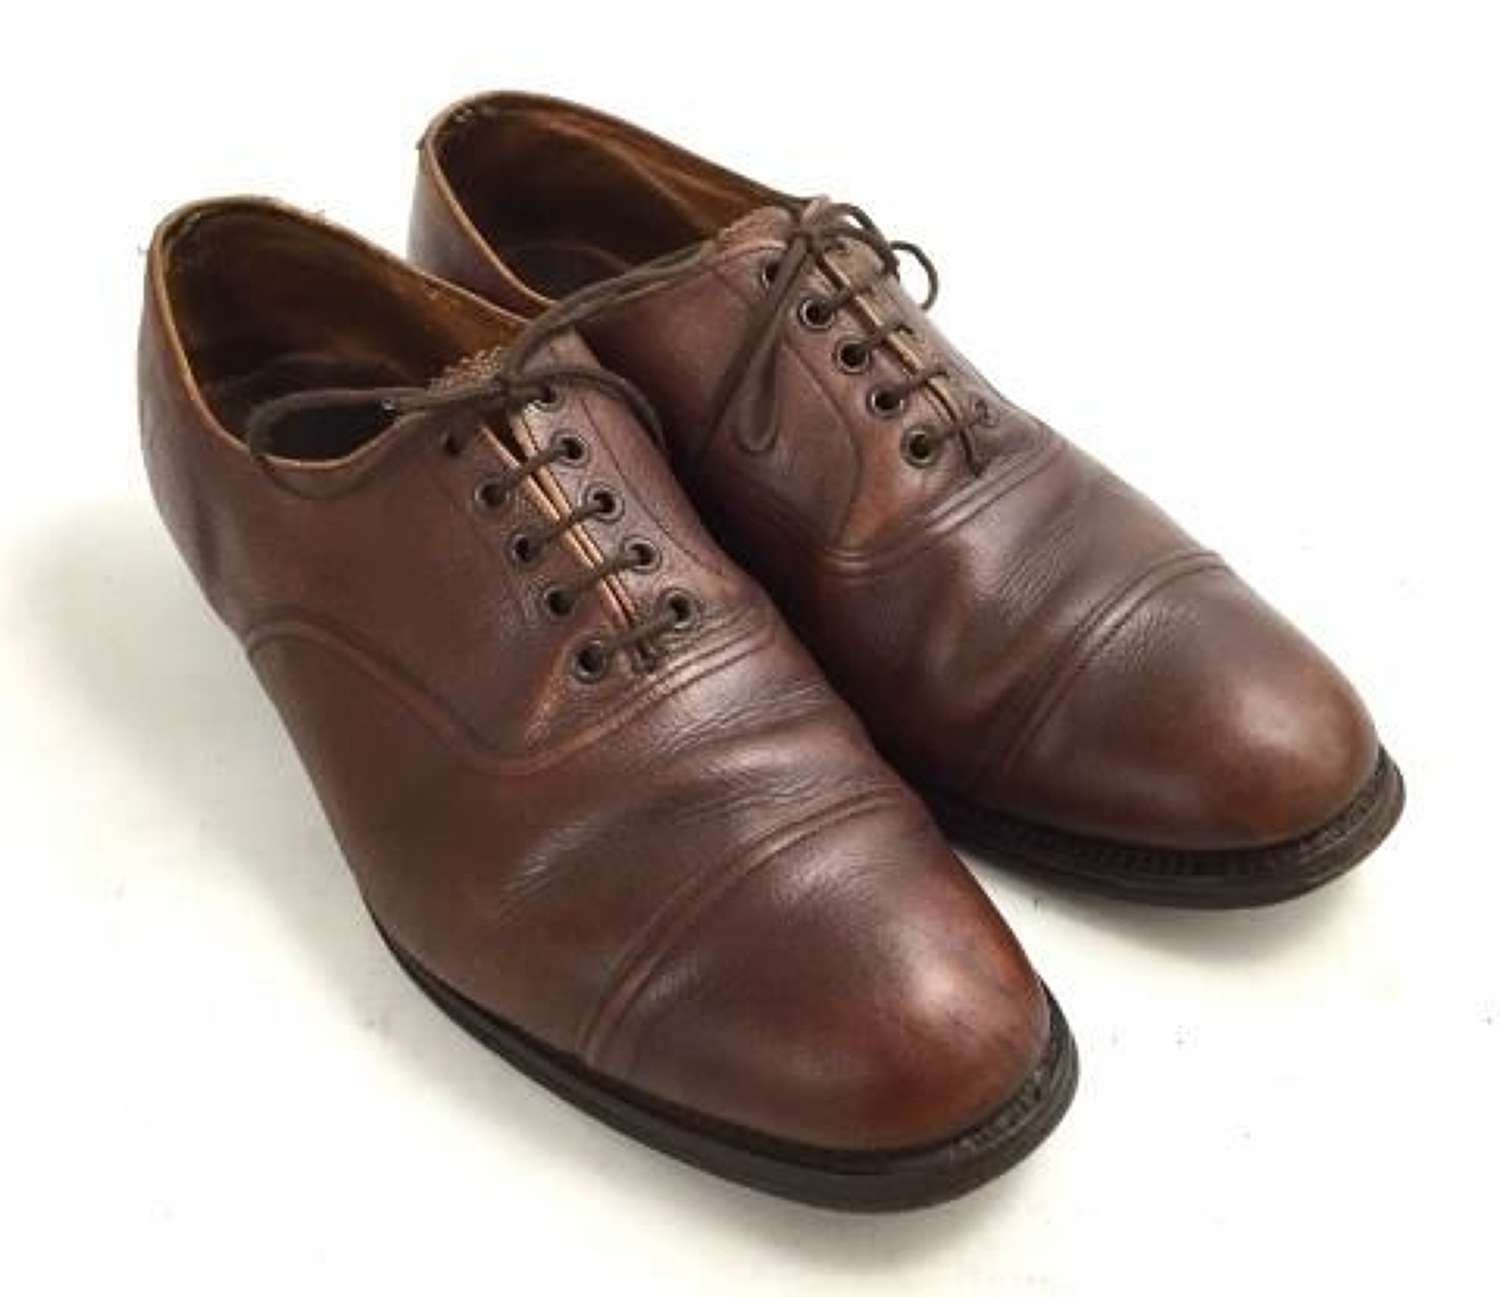 Original British Army Officers Brown Shoes by 'Church'